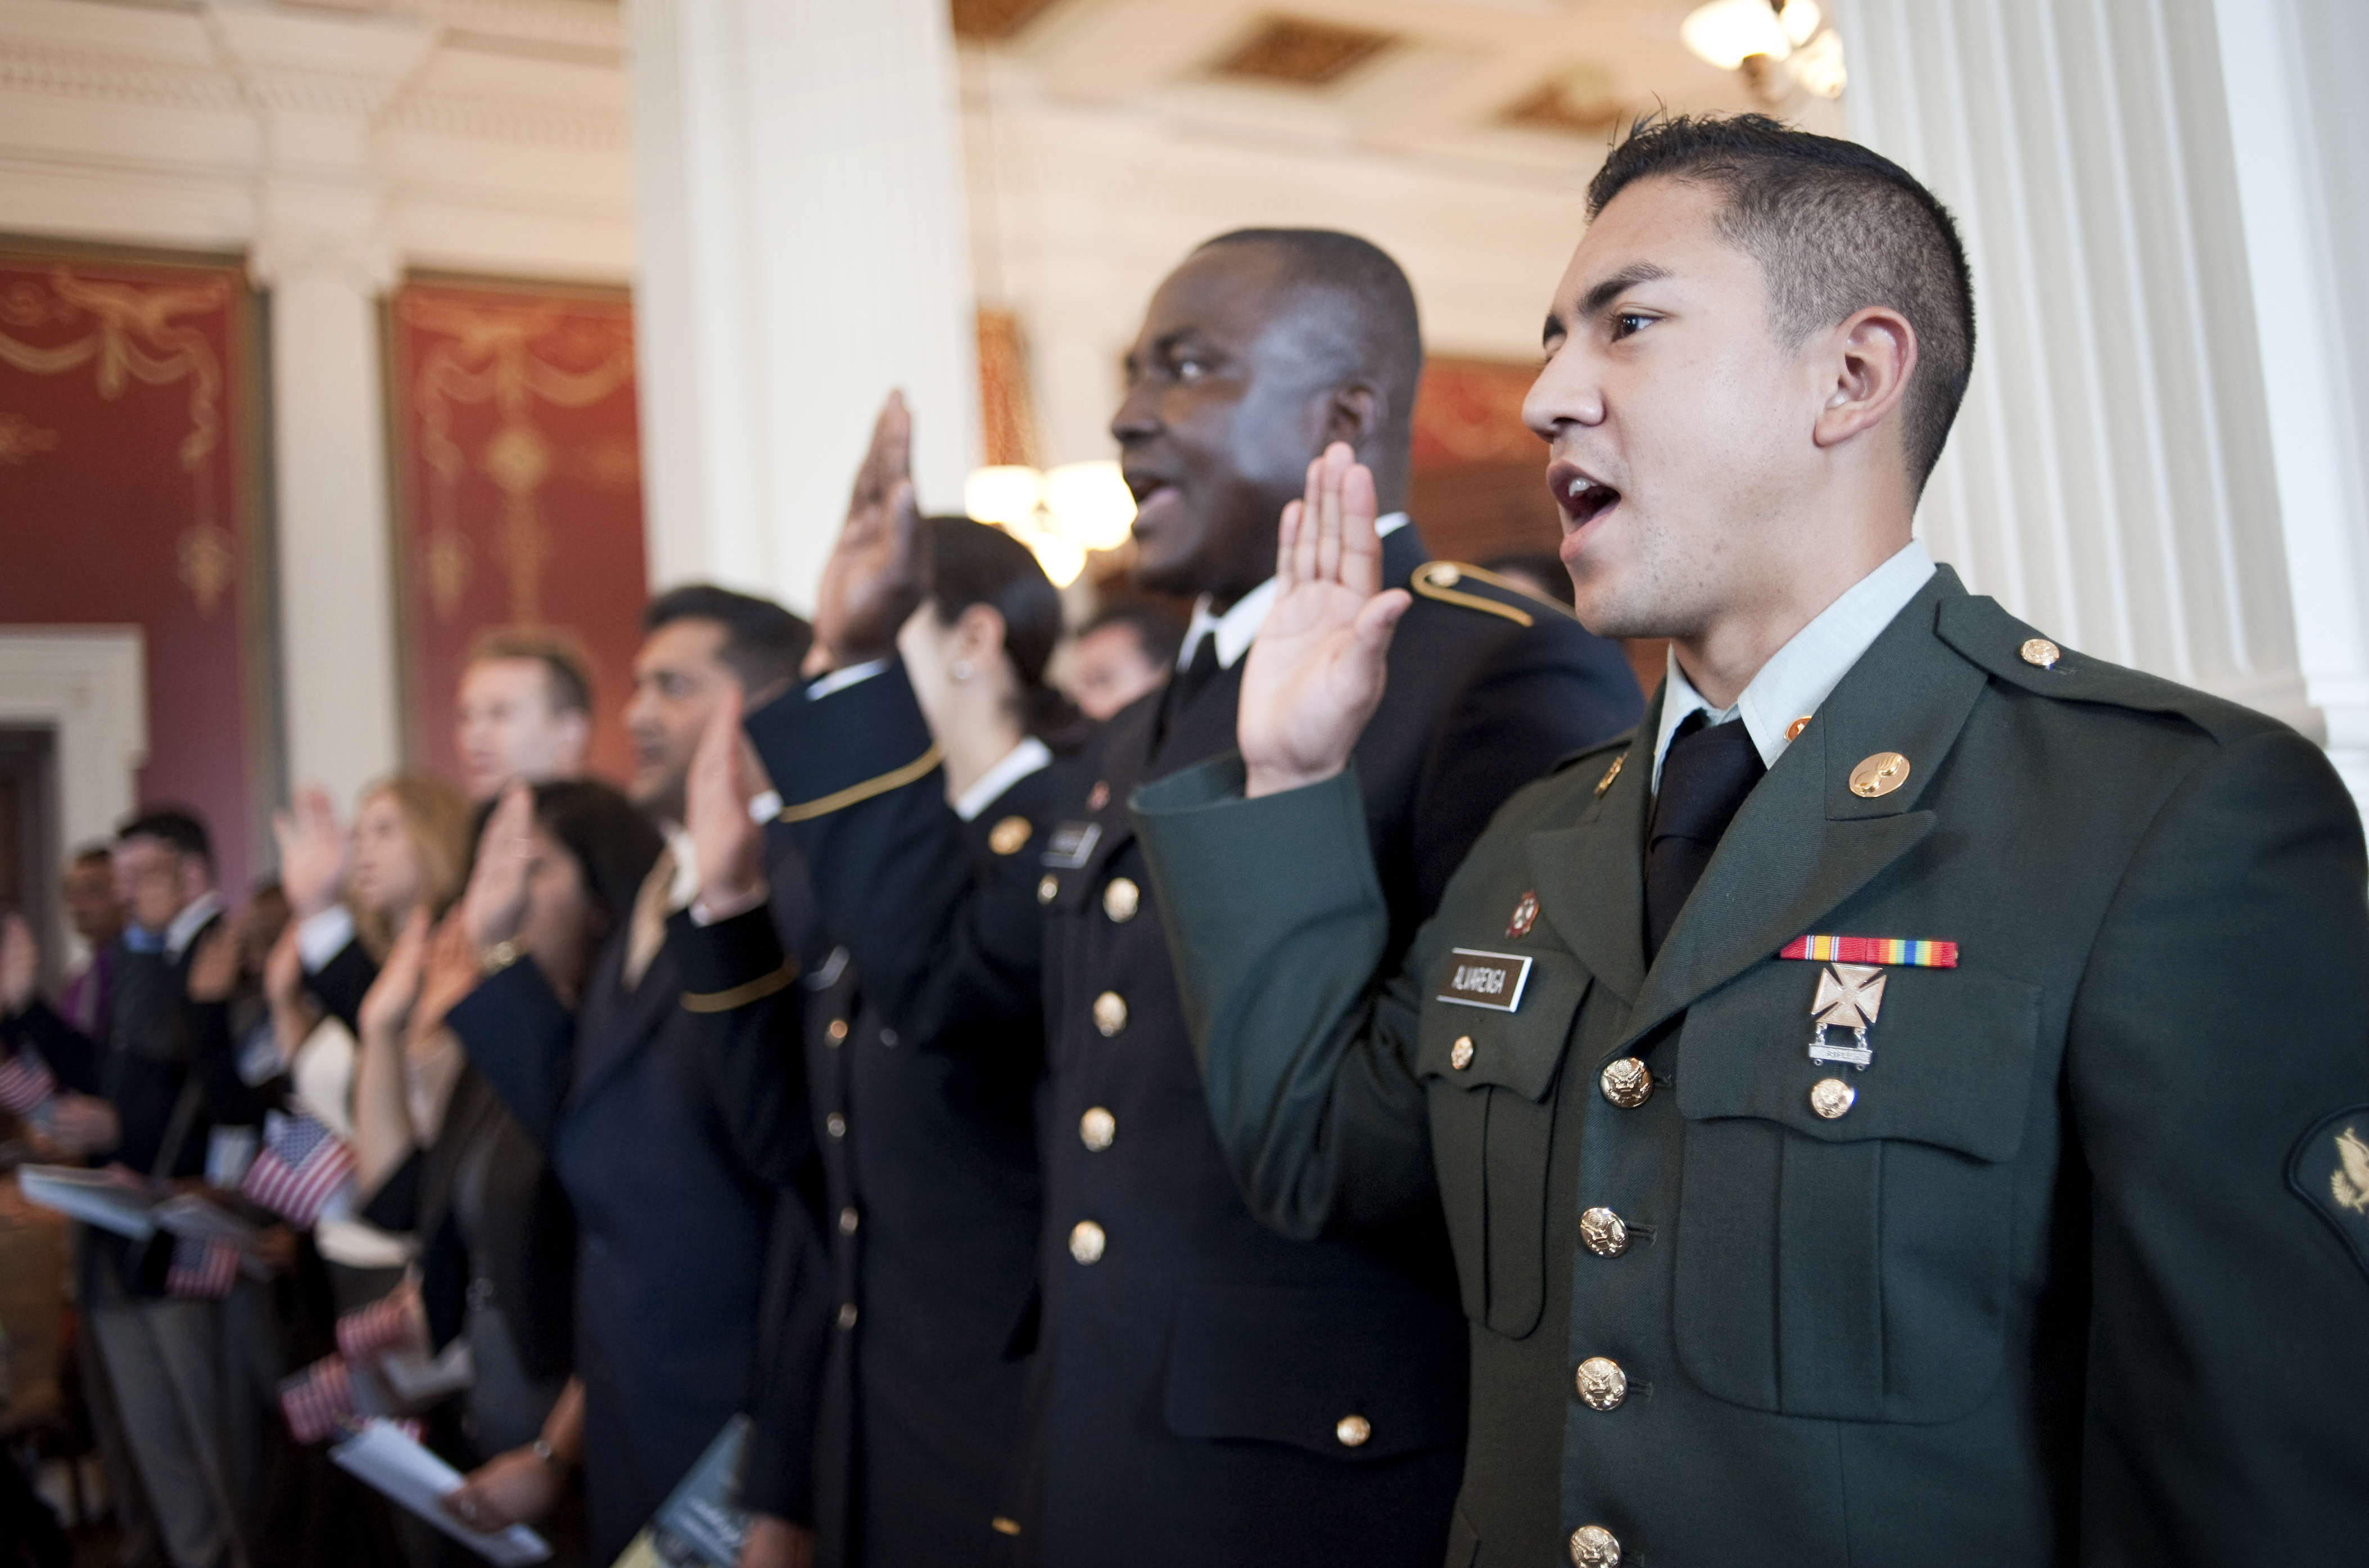 A naturalization service — prominently featuring soldiers — at the Library of Congress, 2013.